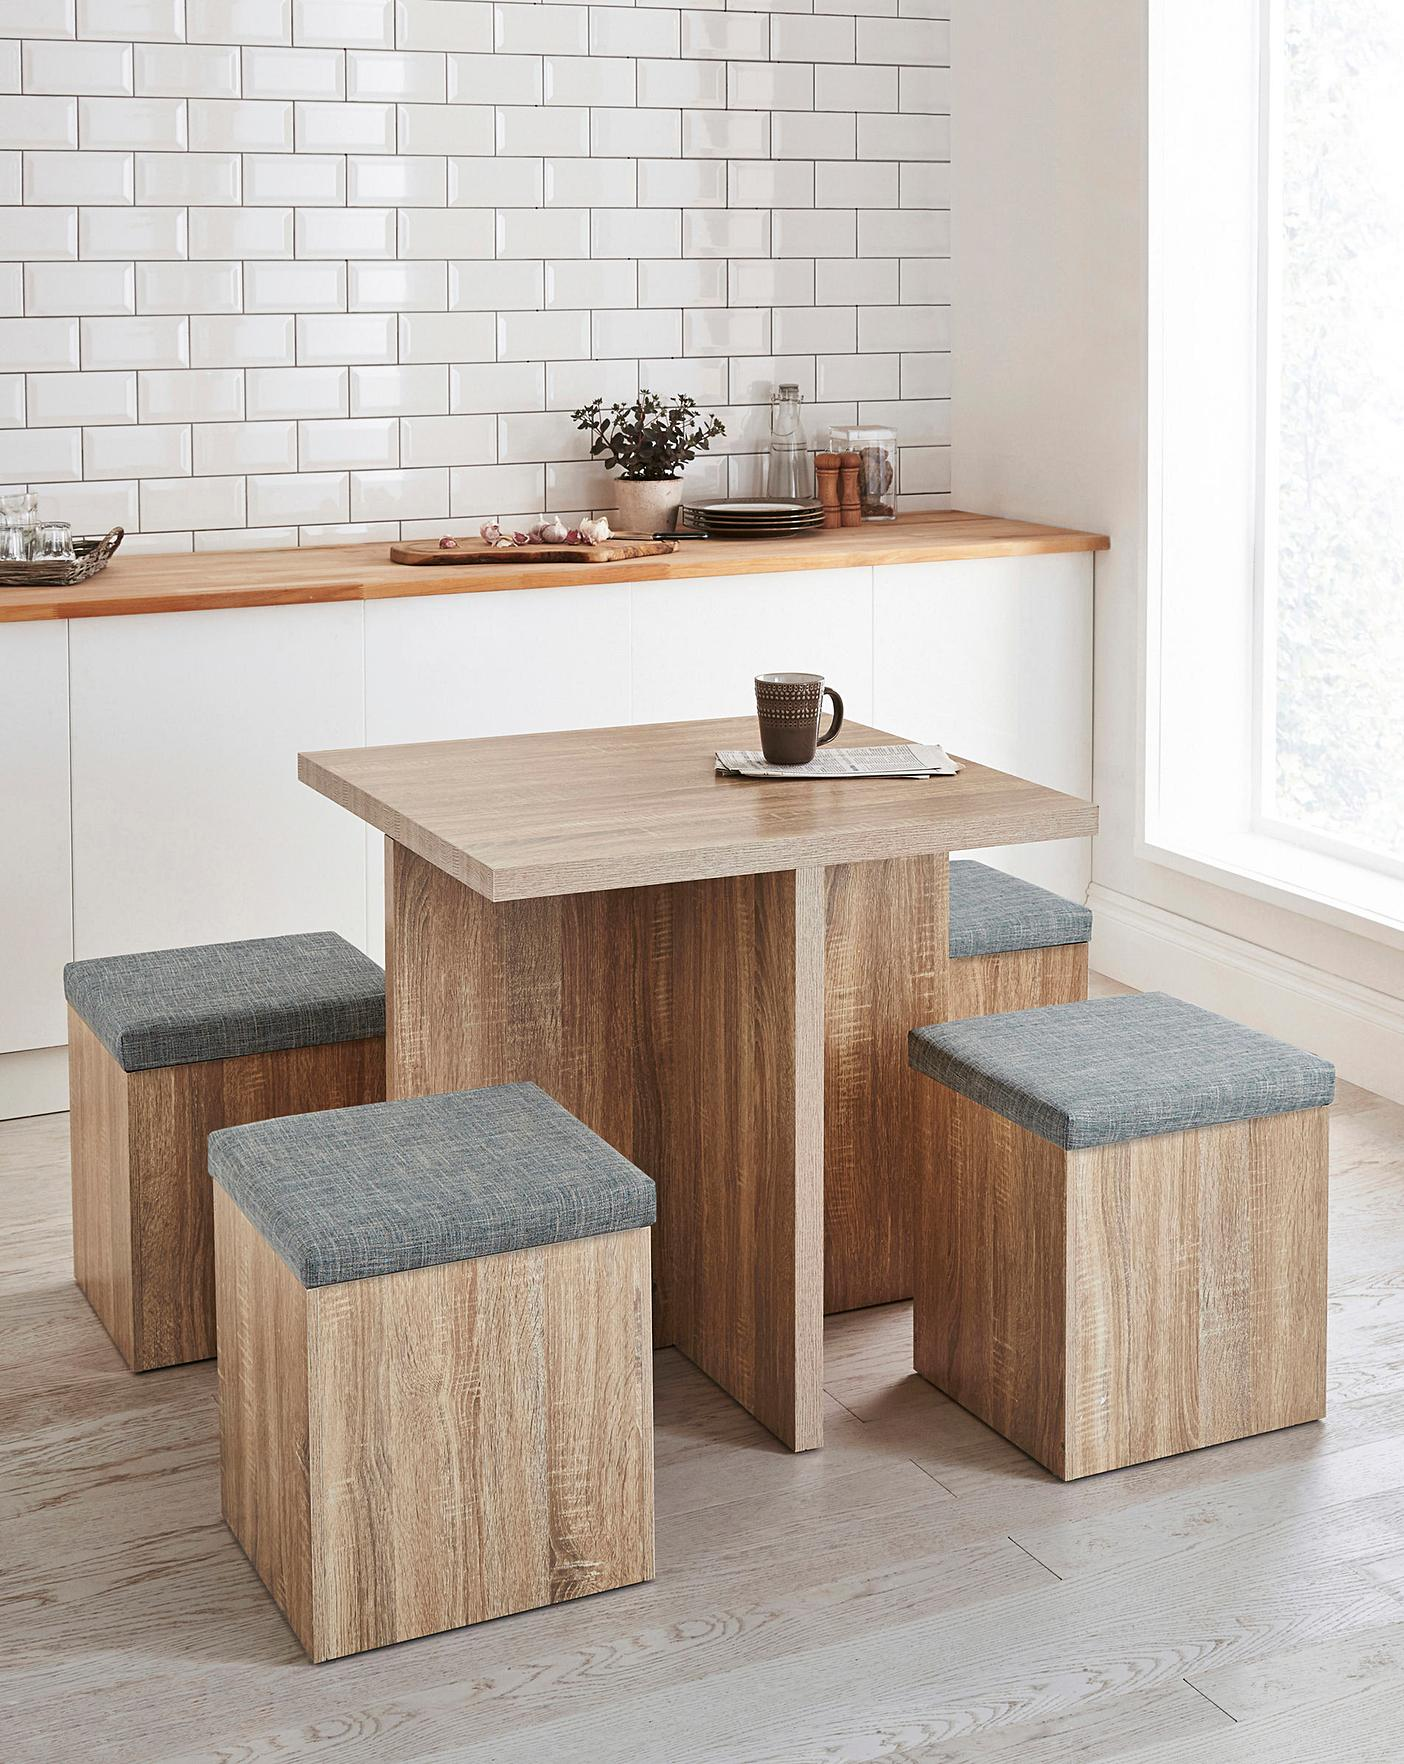 Hideaway Table And Chairs Dining Set Design Ideas